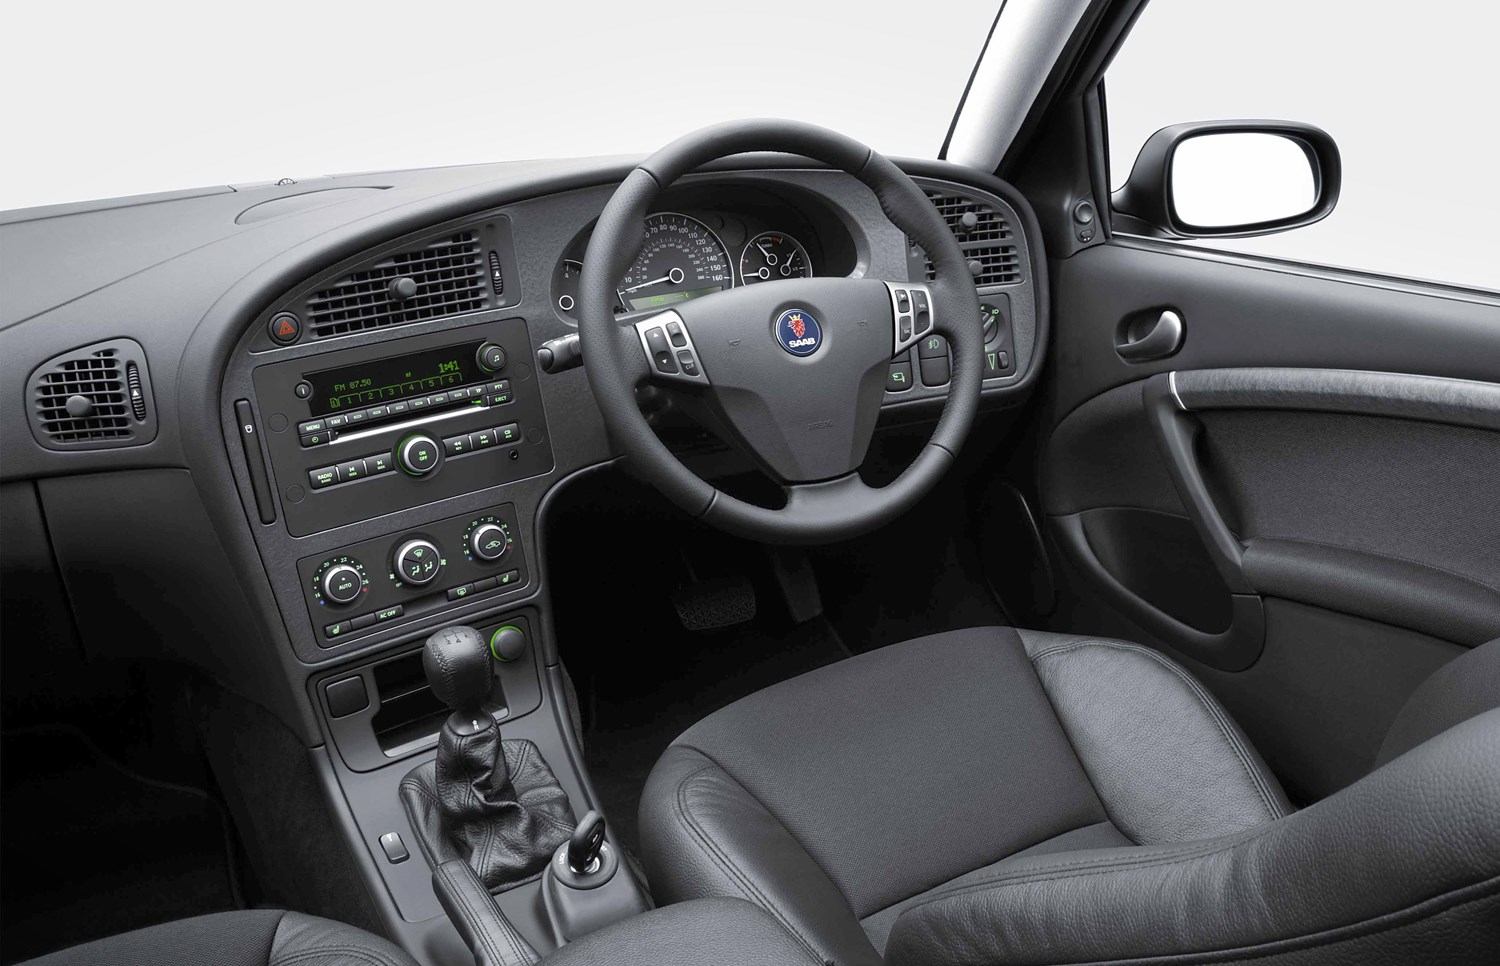 Saab 9 5 Saloon Review 2005 2009 Parkers 93 1 Tid Wiring Diagram How Much Is It To Insure